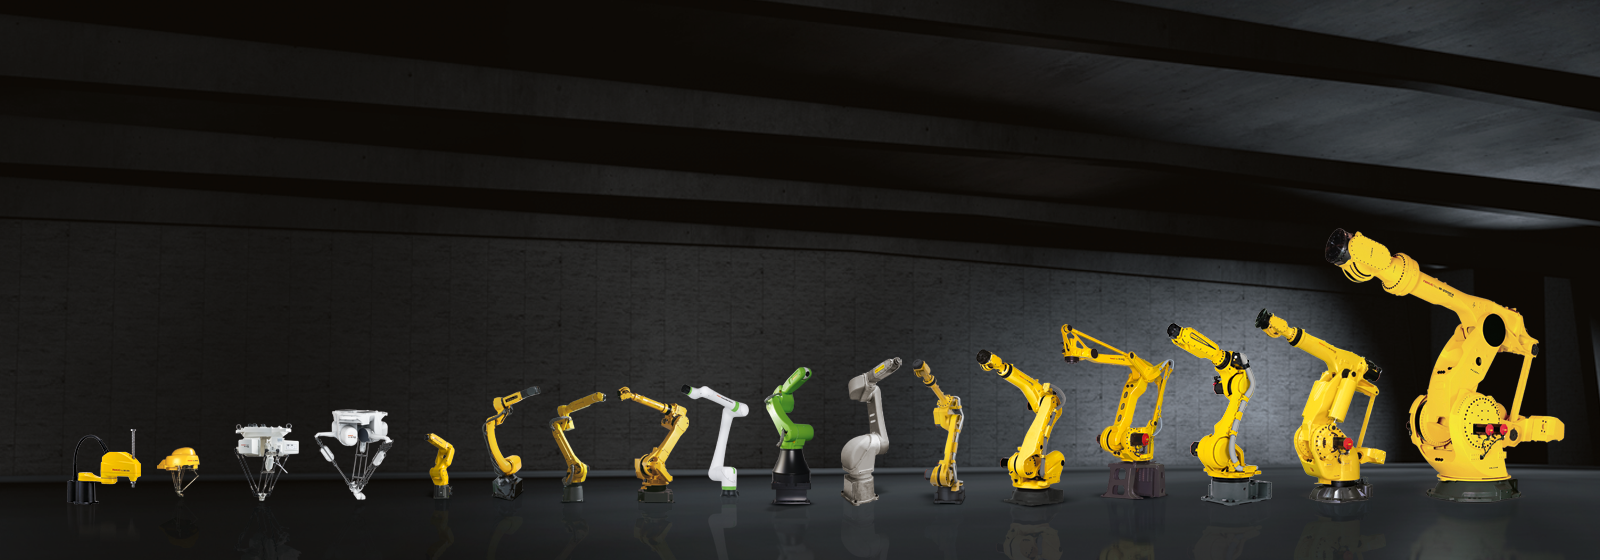 Range overview of all Fanuc robots